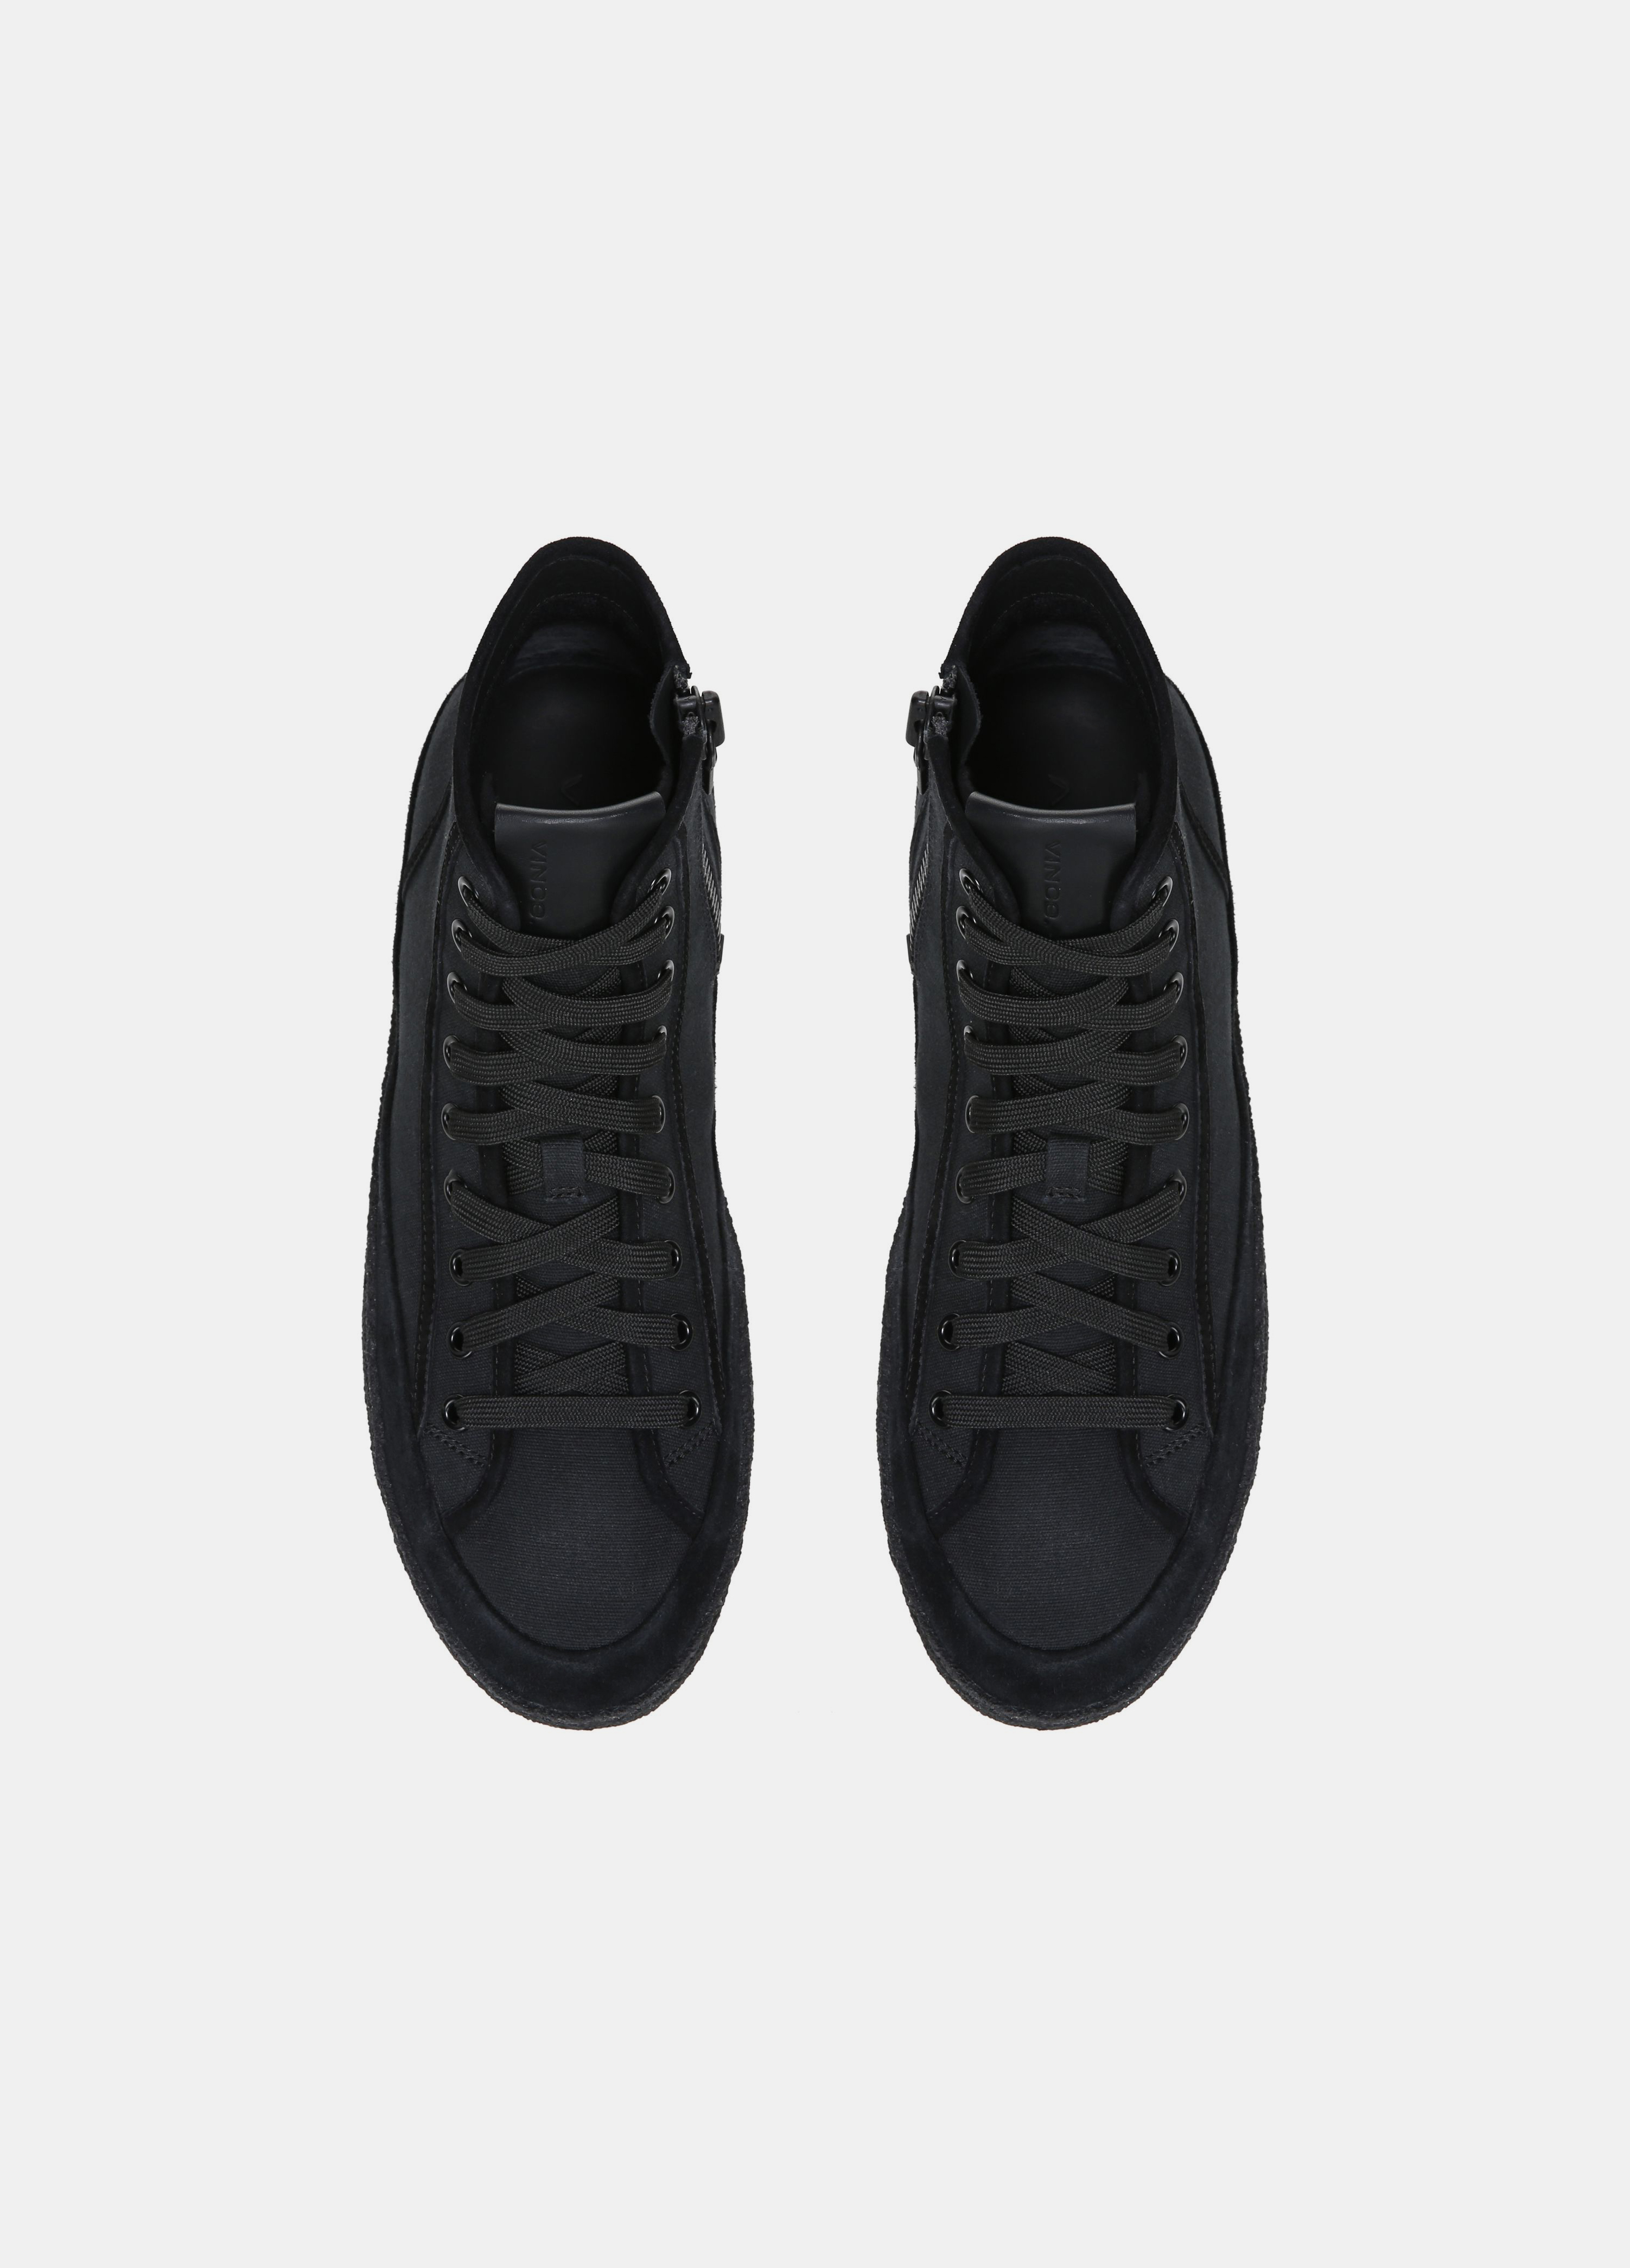 Rodgers Canvas High Top Sneaker